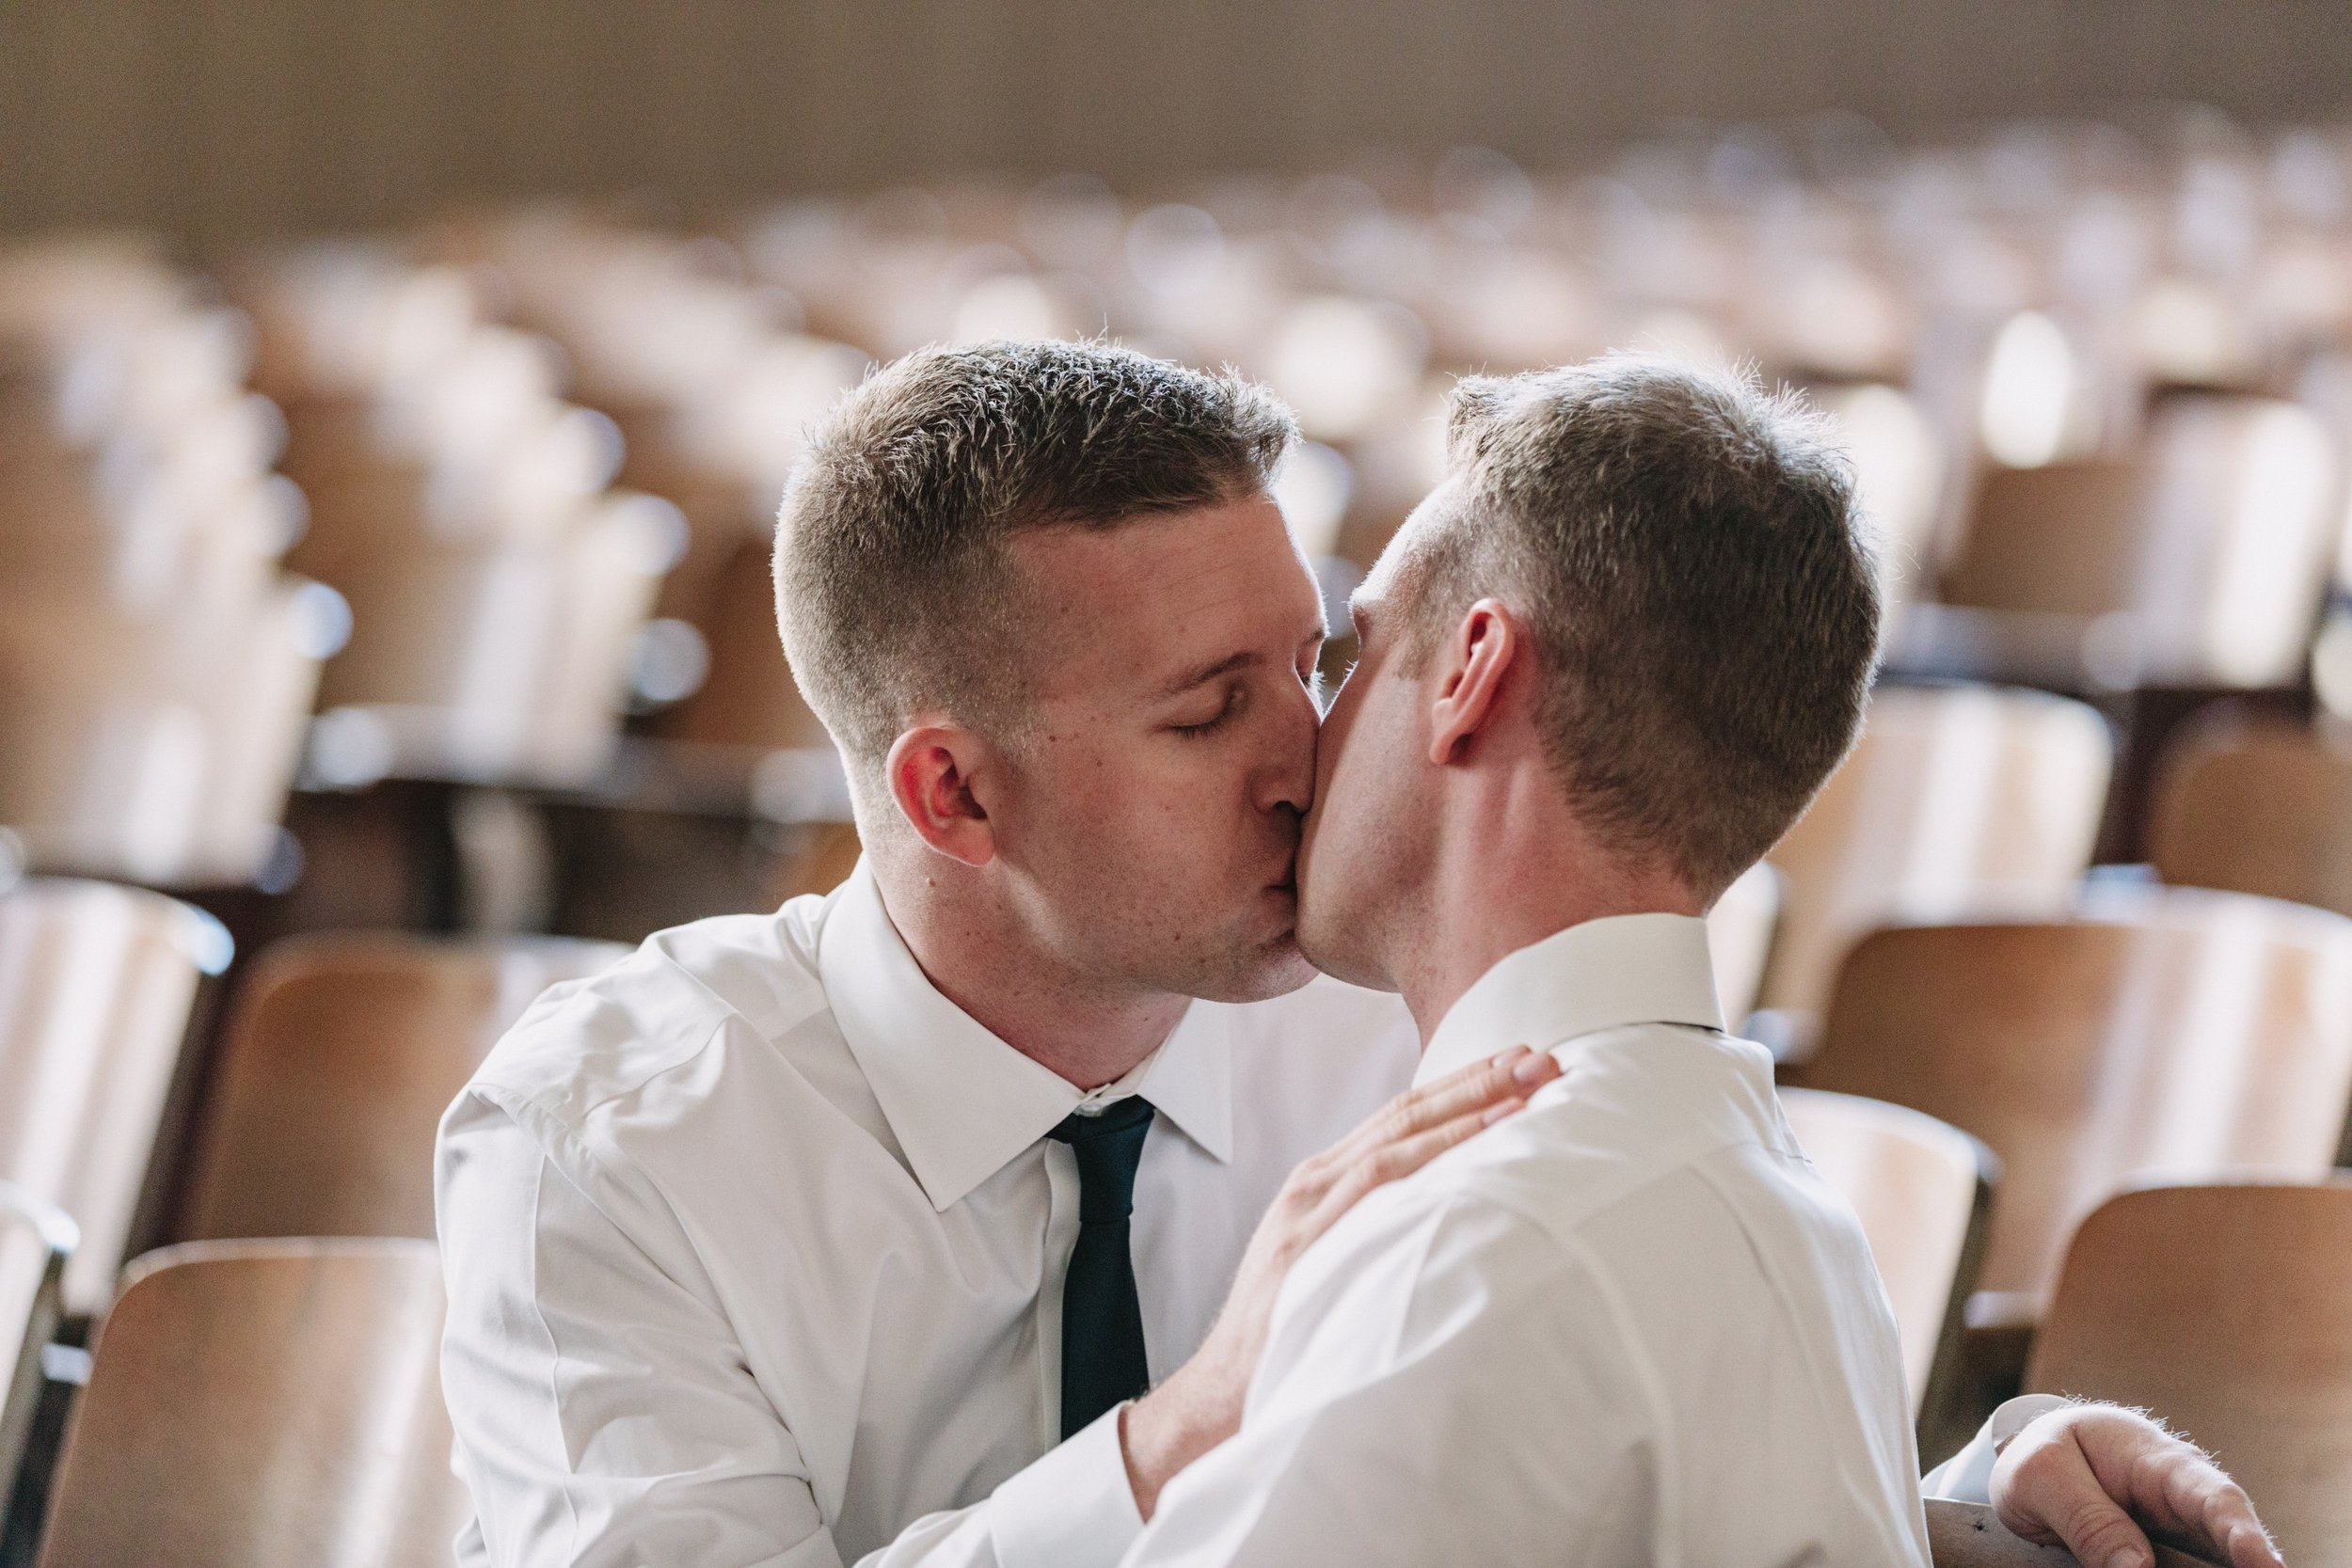 bok-editorial-styled-same-sex-lgbt-wedding-zachary-andrew-events